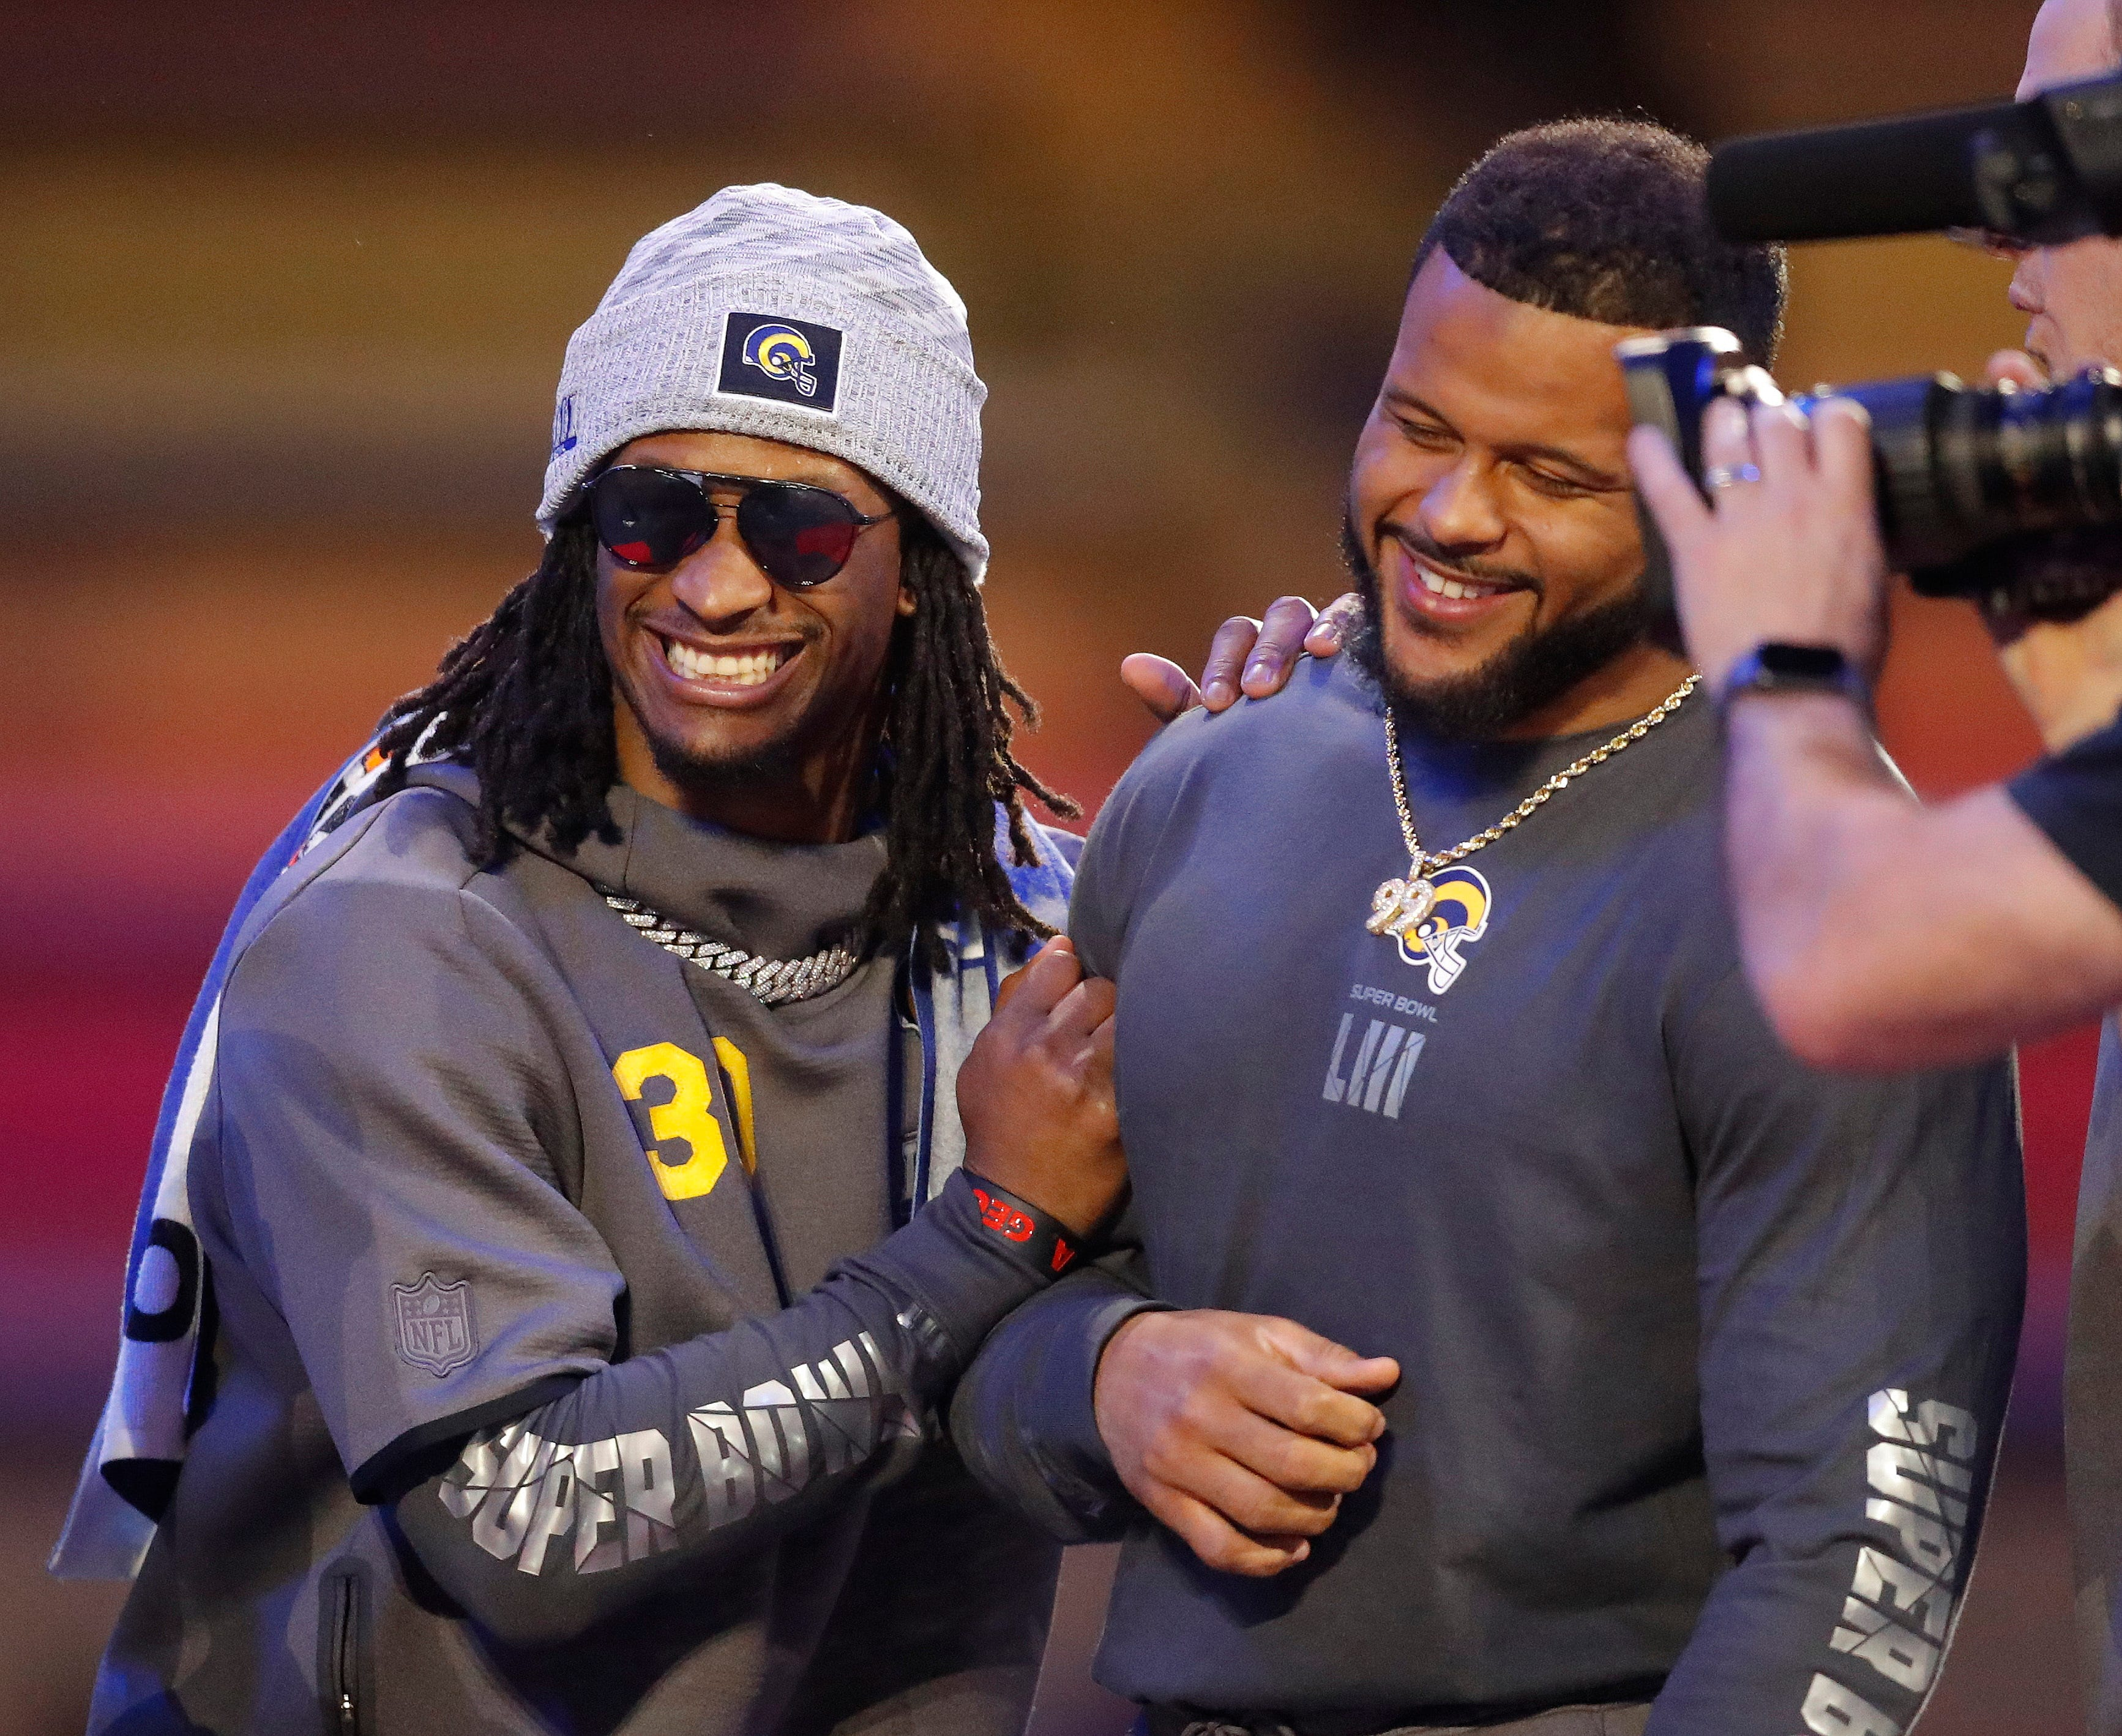 The Los Angeles Rams' Aaron Donald and Todd Gurley have some fun during Opening Night.